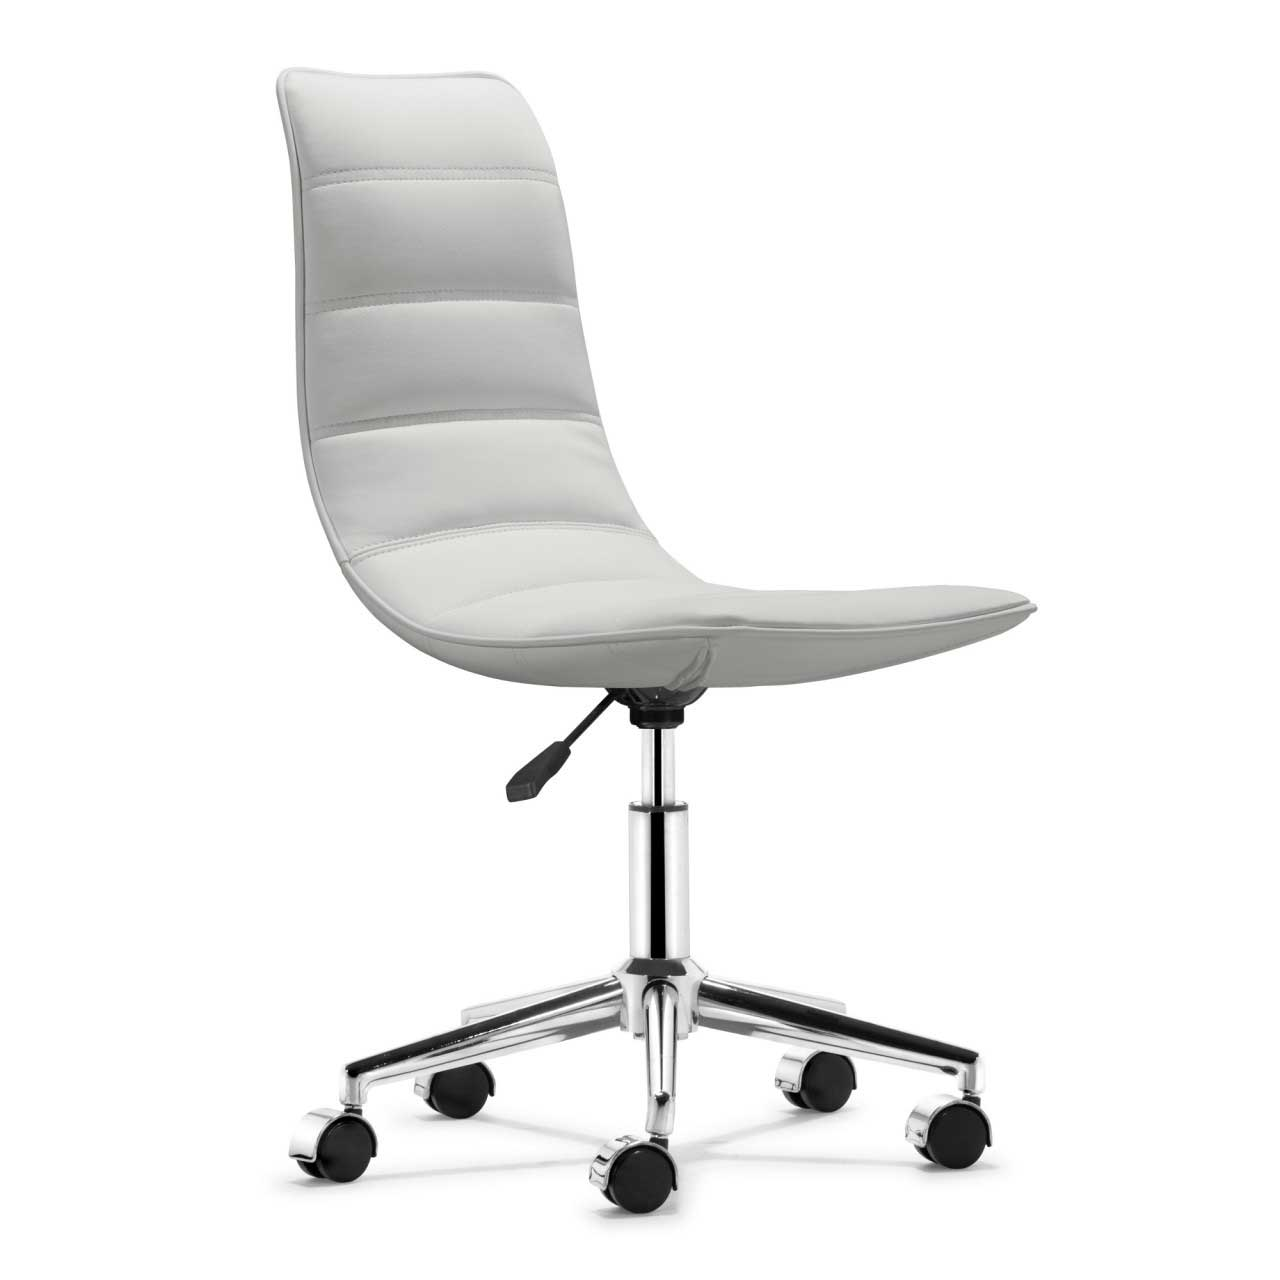 white office chair design and style cof